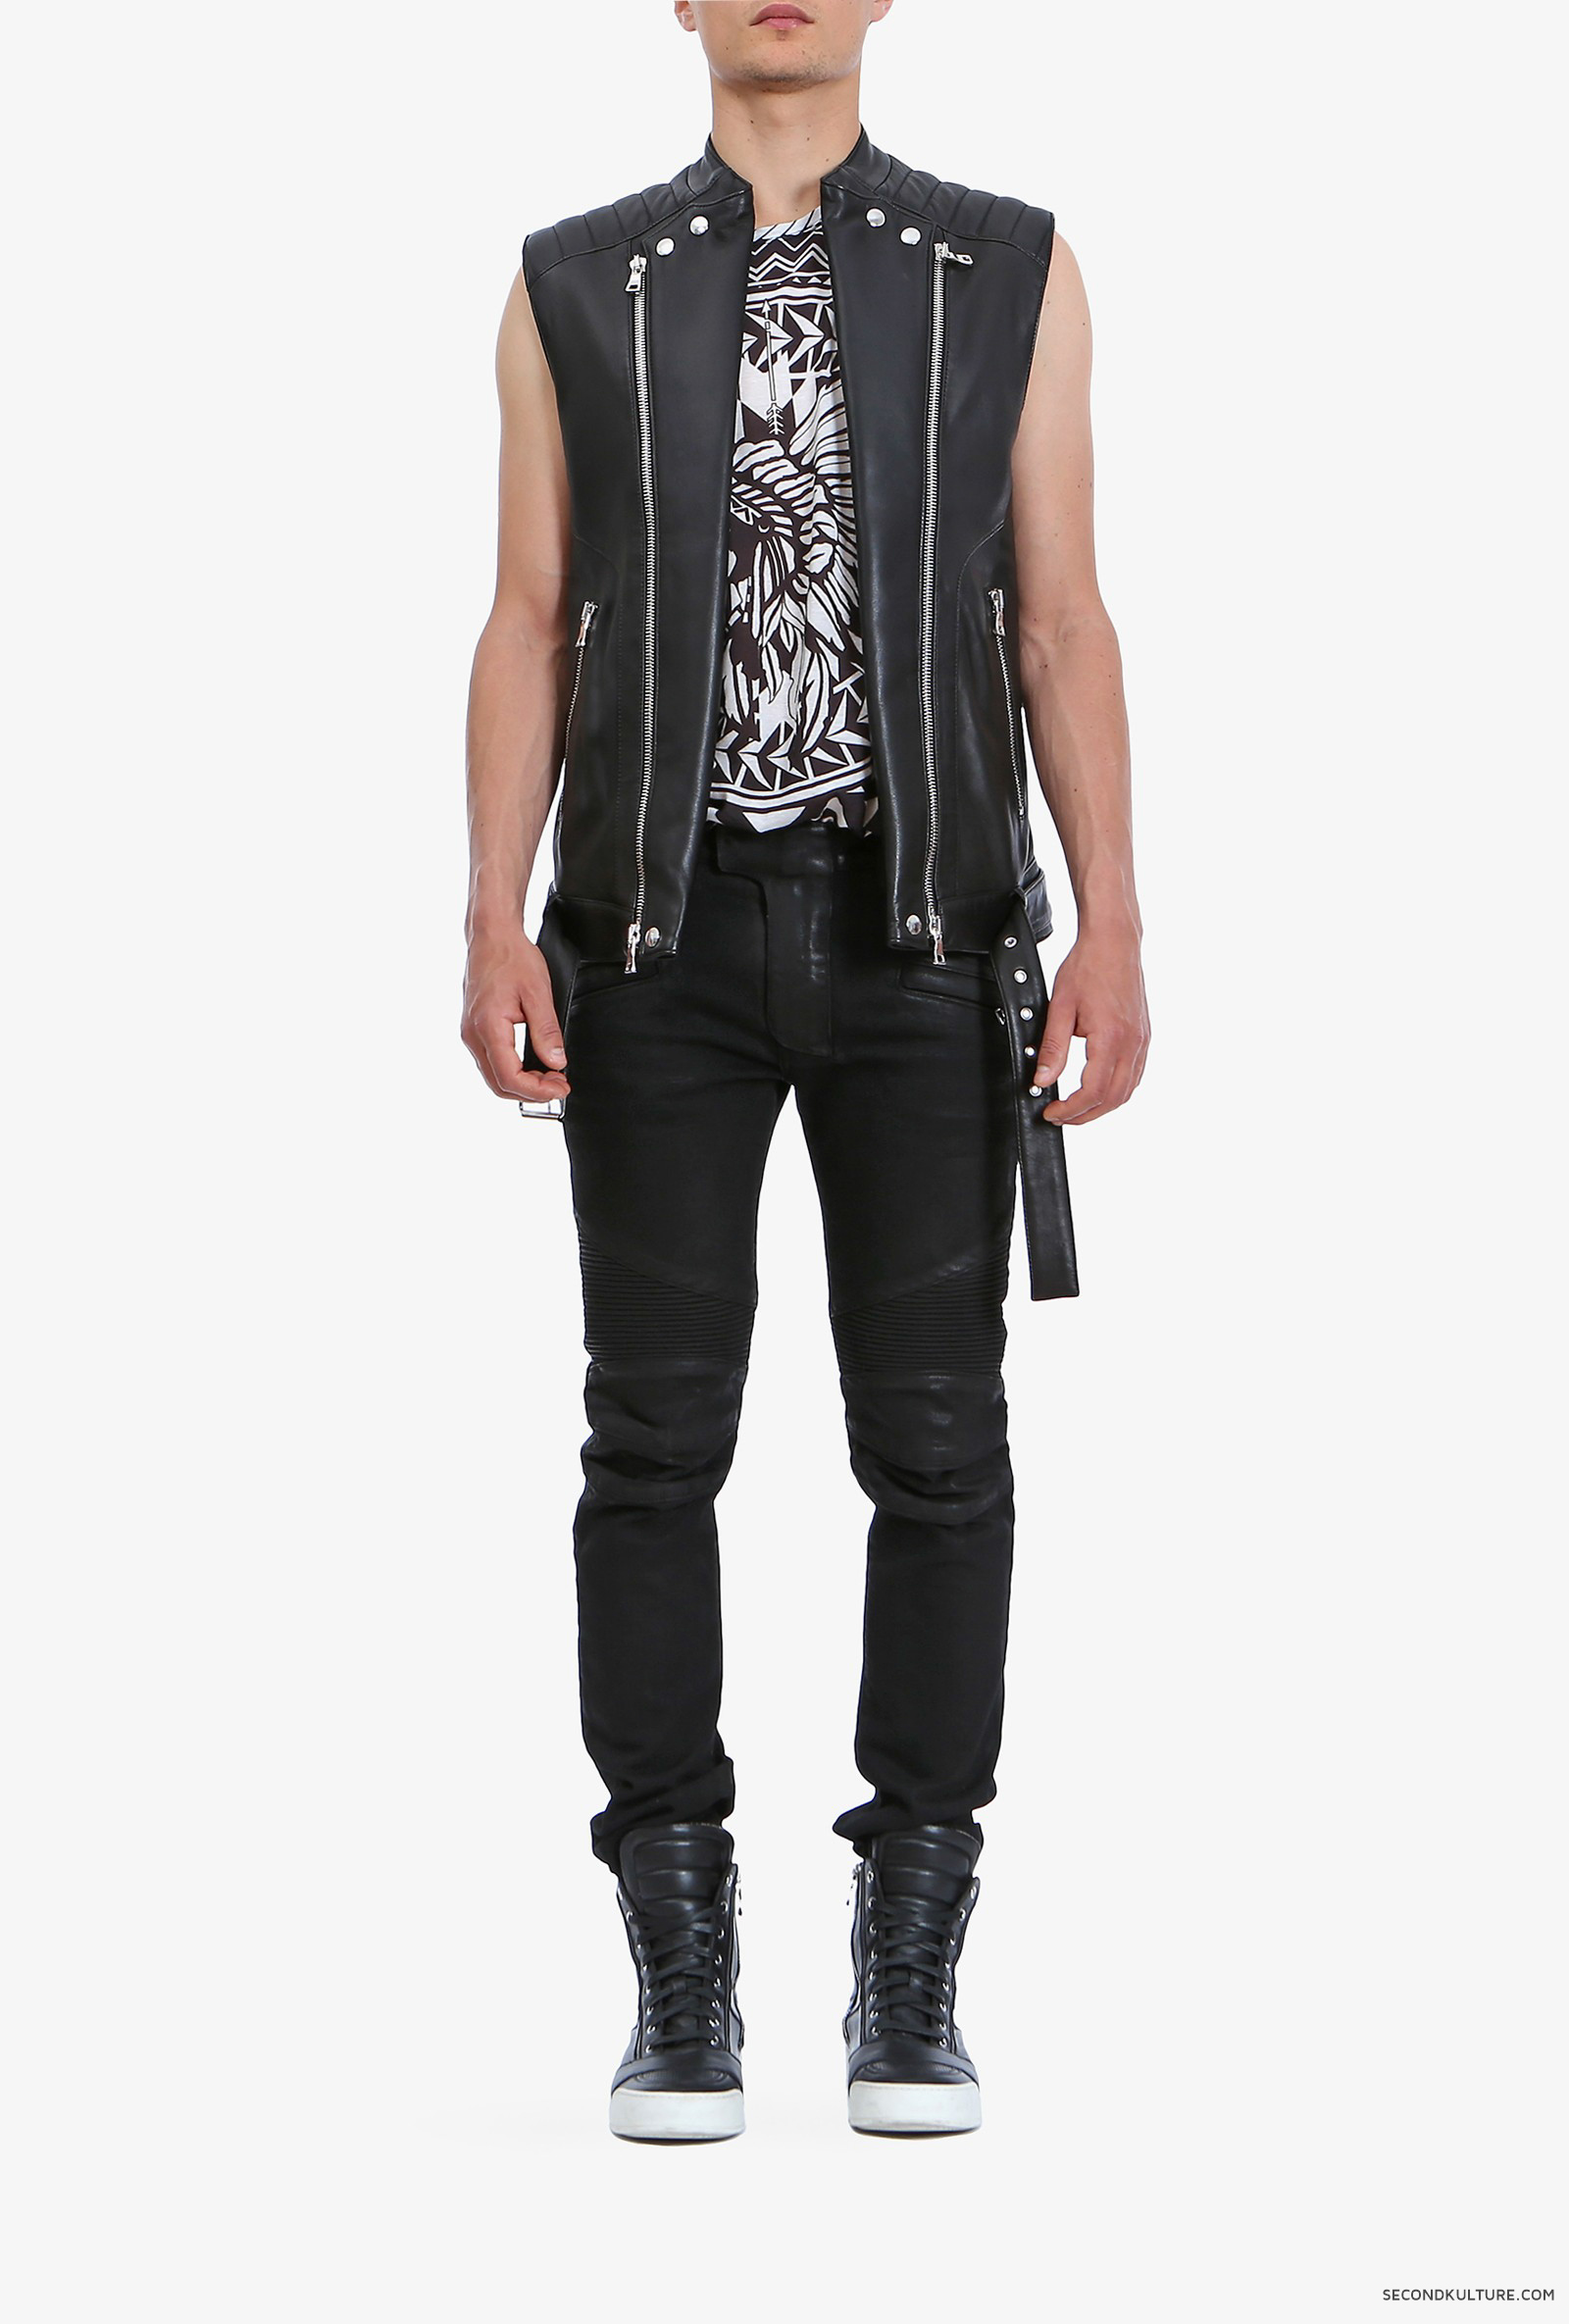 Balmain-Black-Biker-Leather-Zipped-Sleeveless-Jacket-S5HC851C601-176-1